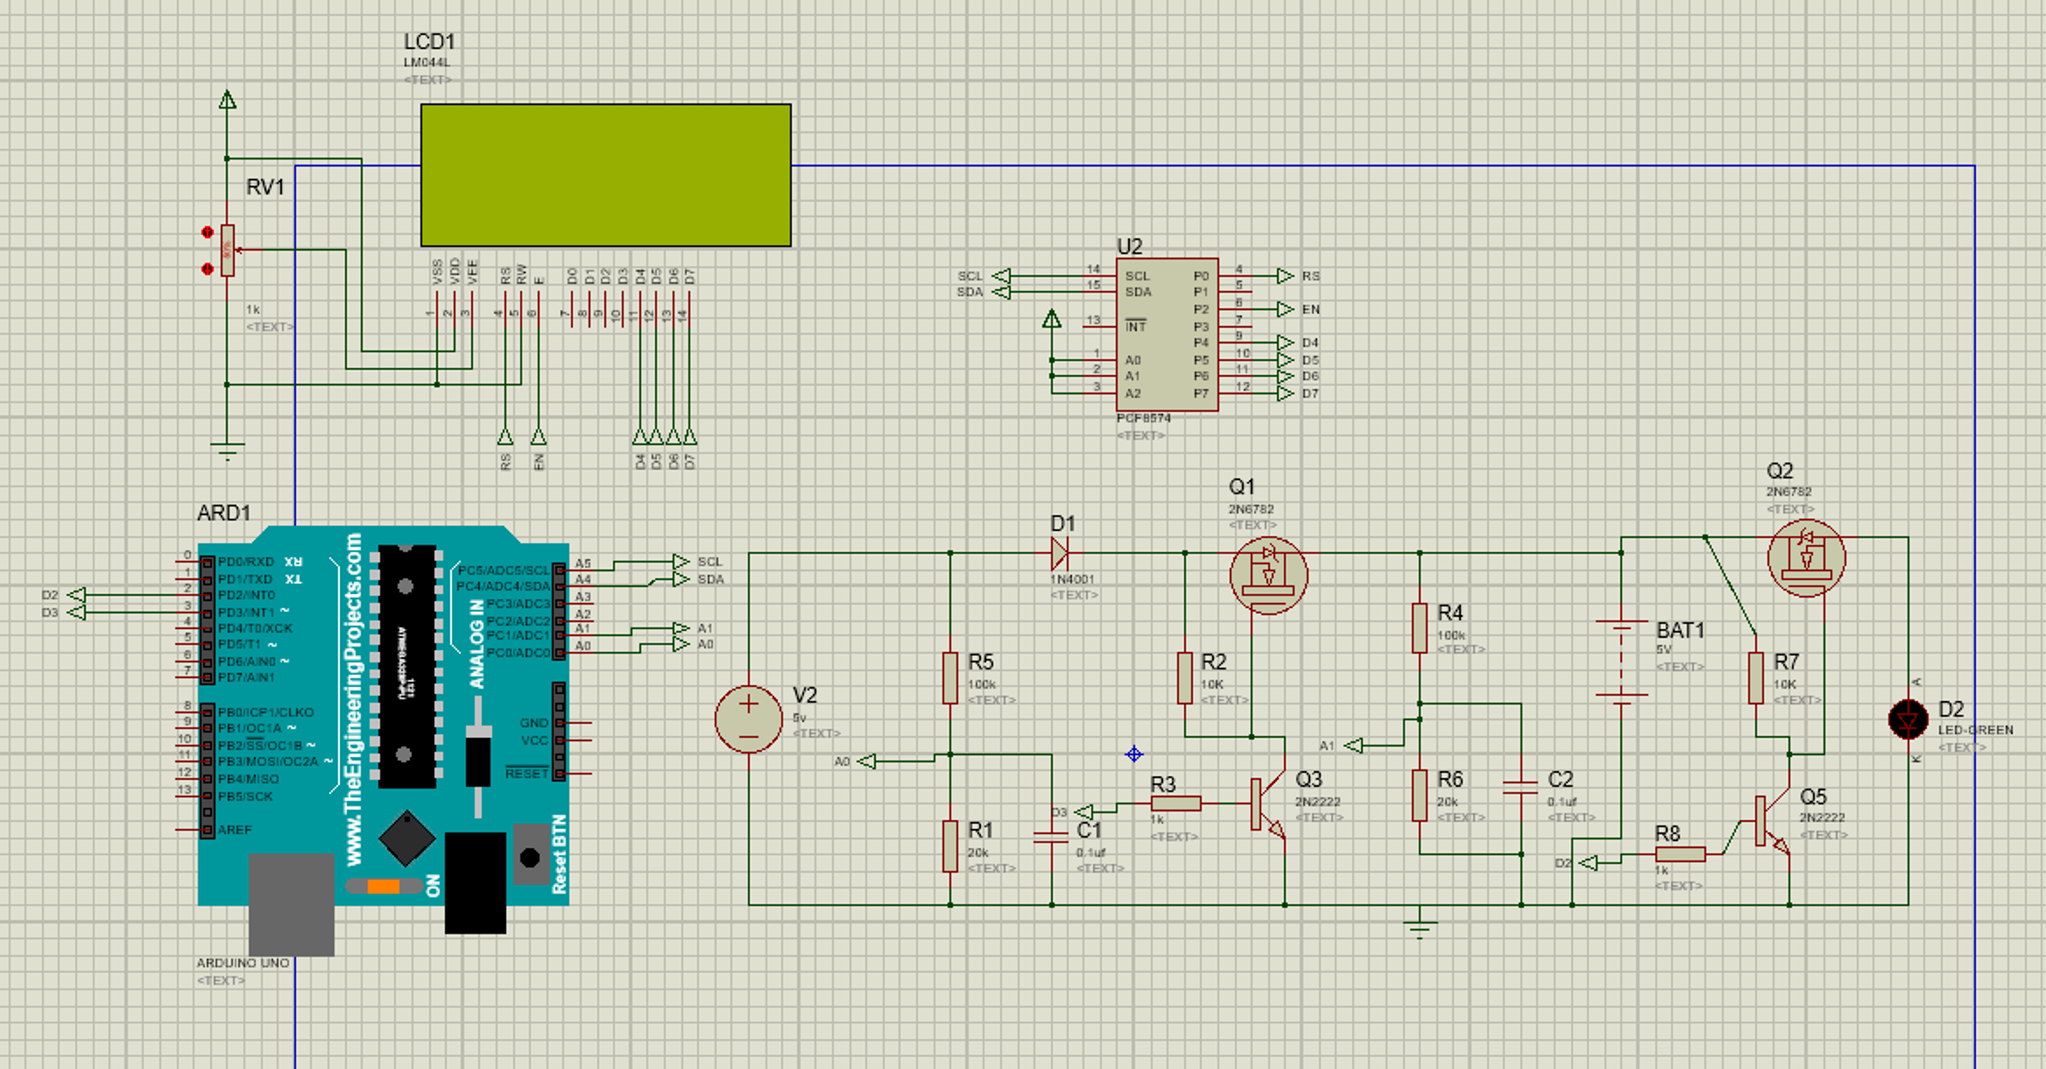 Im Using Proteus To Run The Simulation Of Cir Battery Charger Circuit Lead Acid Monitor 12v And This Is All Information For My